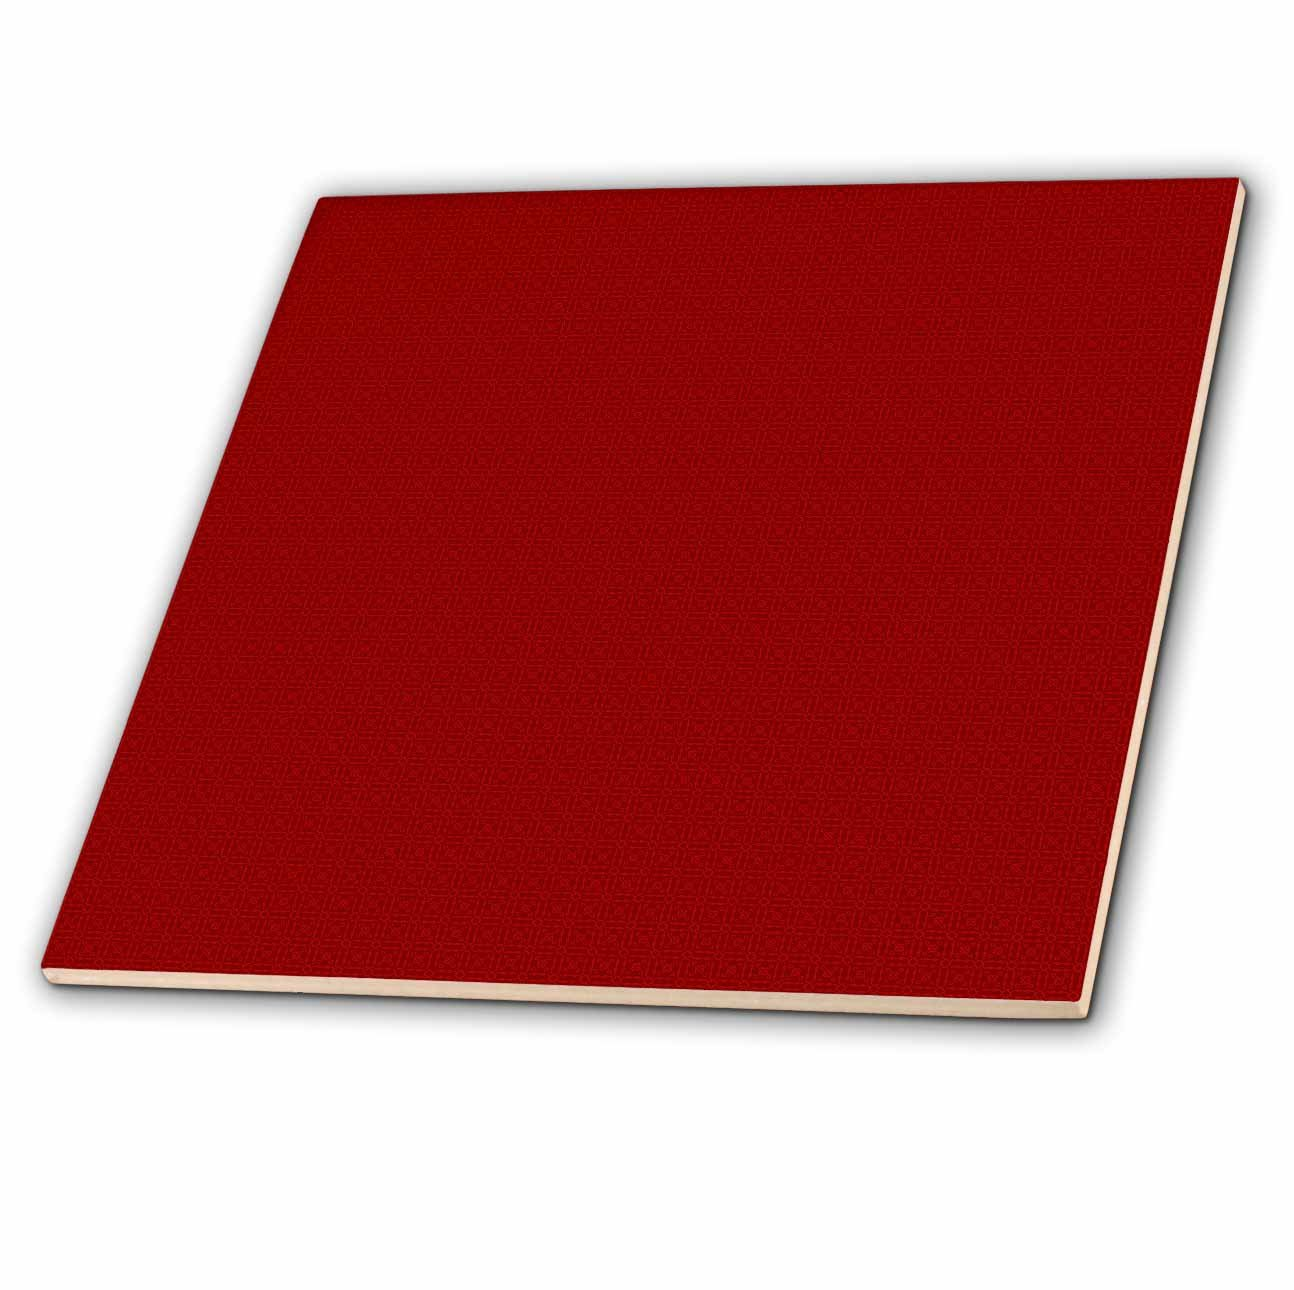 3dRose ct_180515_1 Dark Red and Light Red Square Patterns Ceramic Tile, 4''